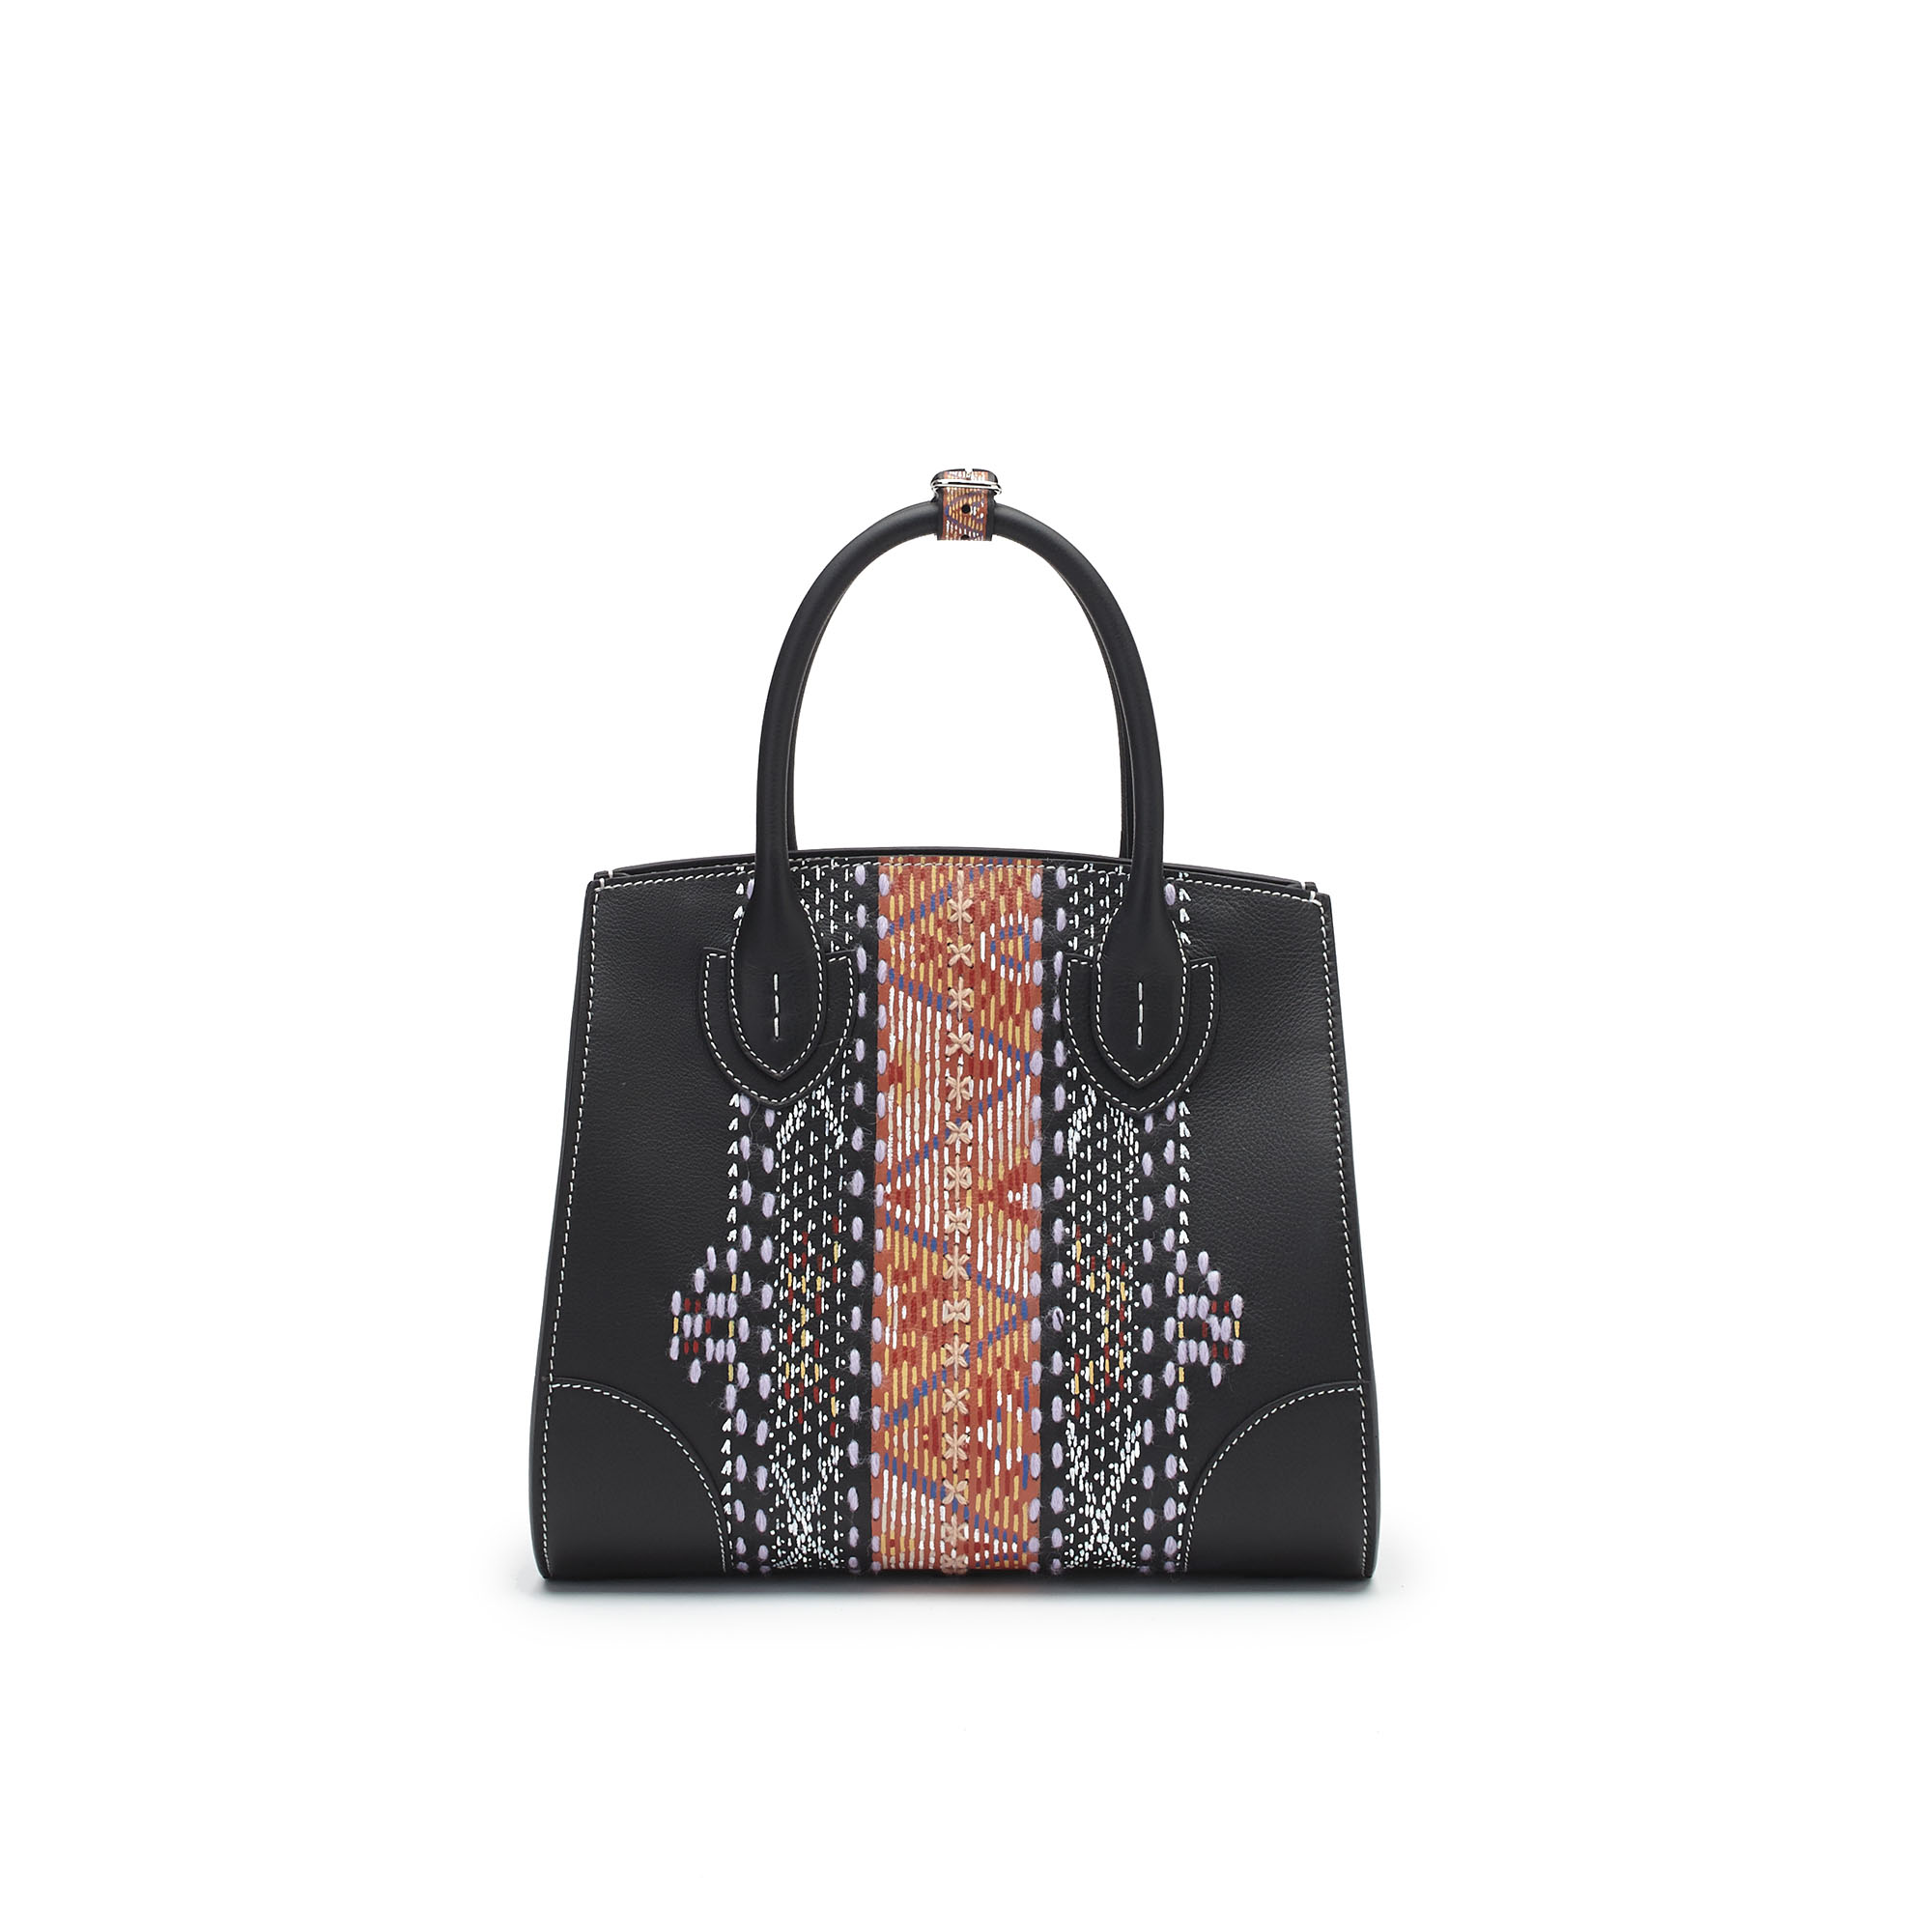 The black soft calf with carpet embroidered and painted by hand Darcy bag by Bertoni 1949 01